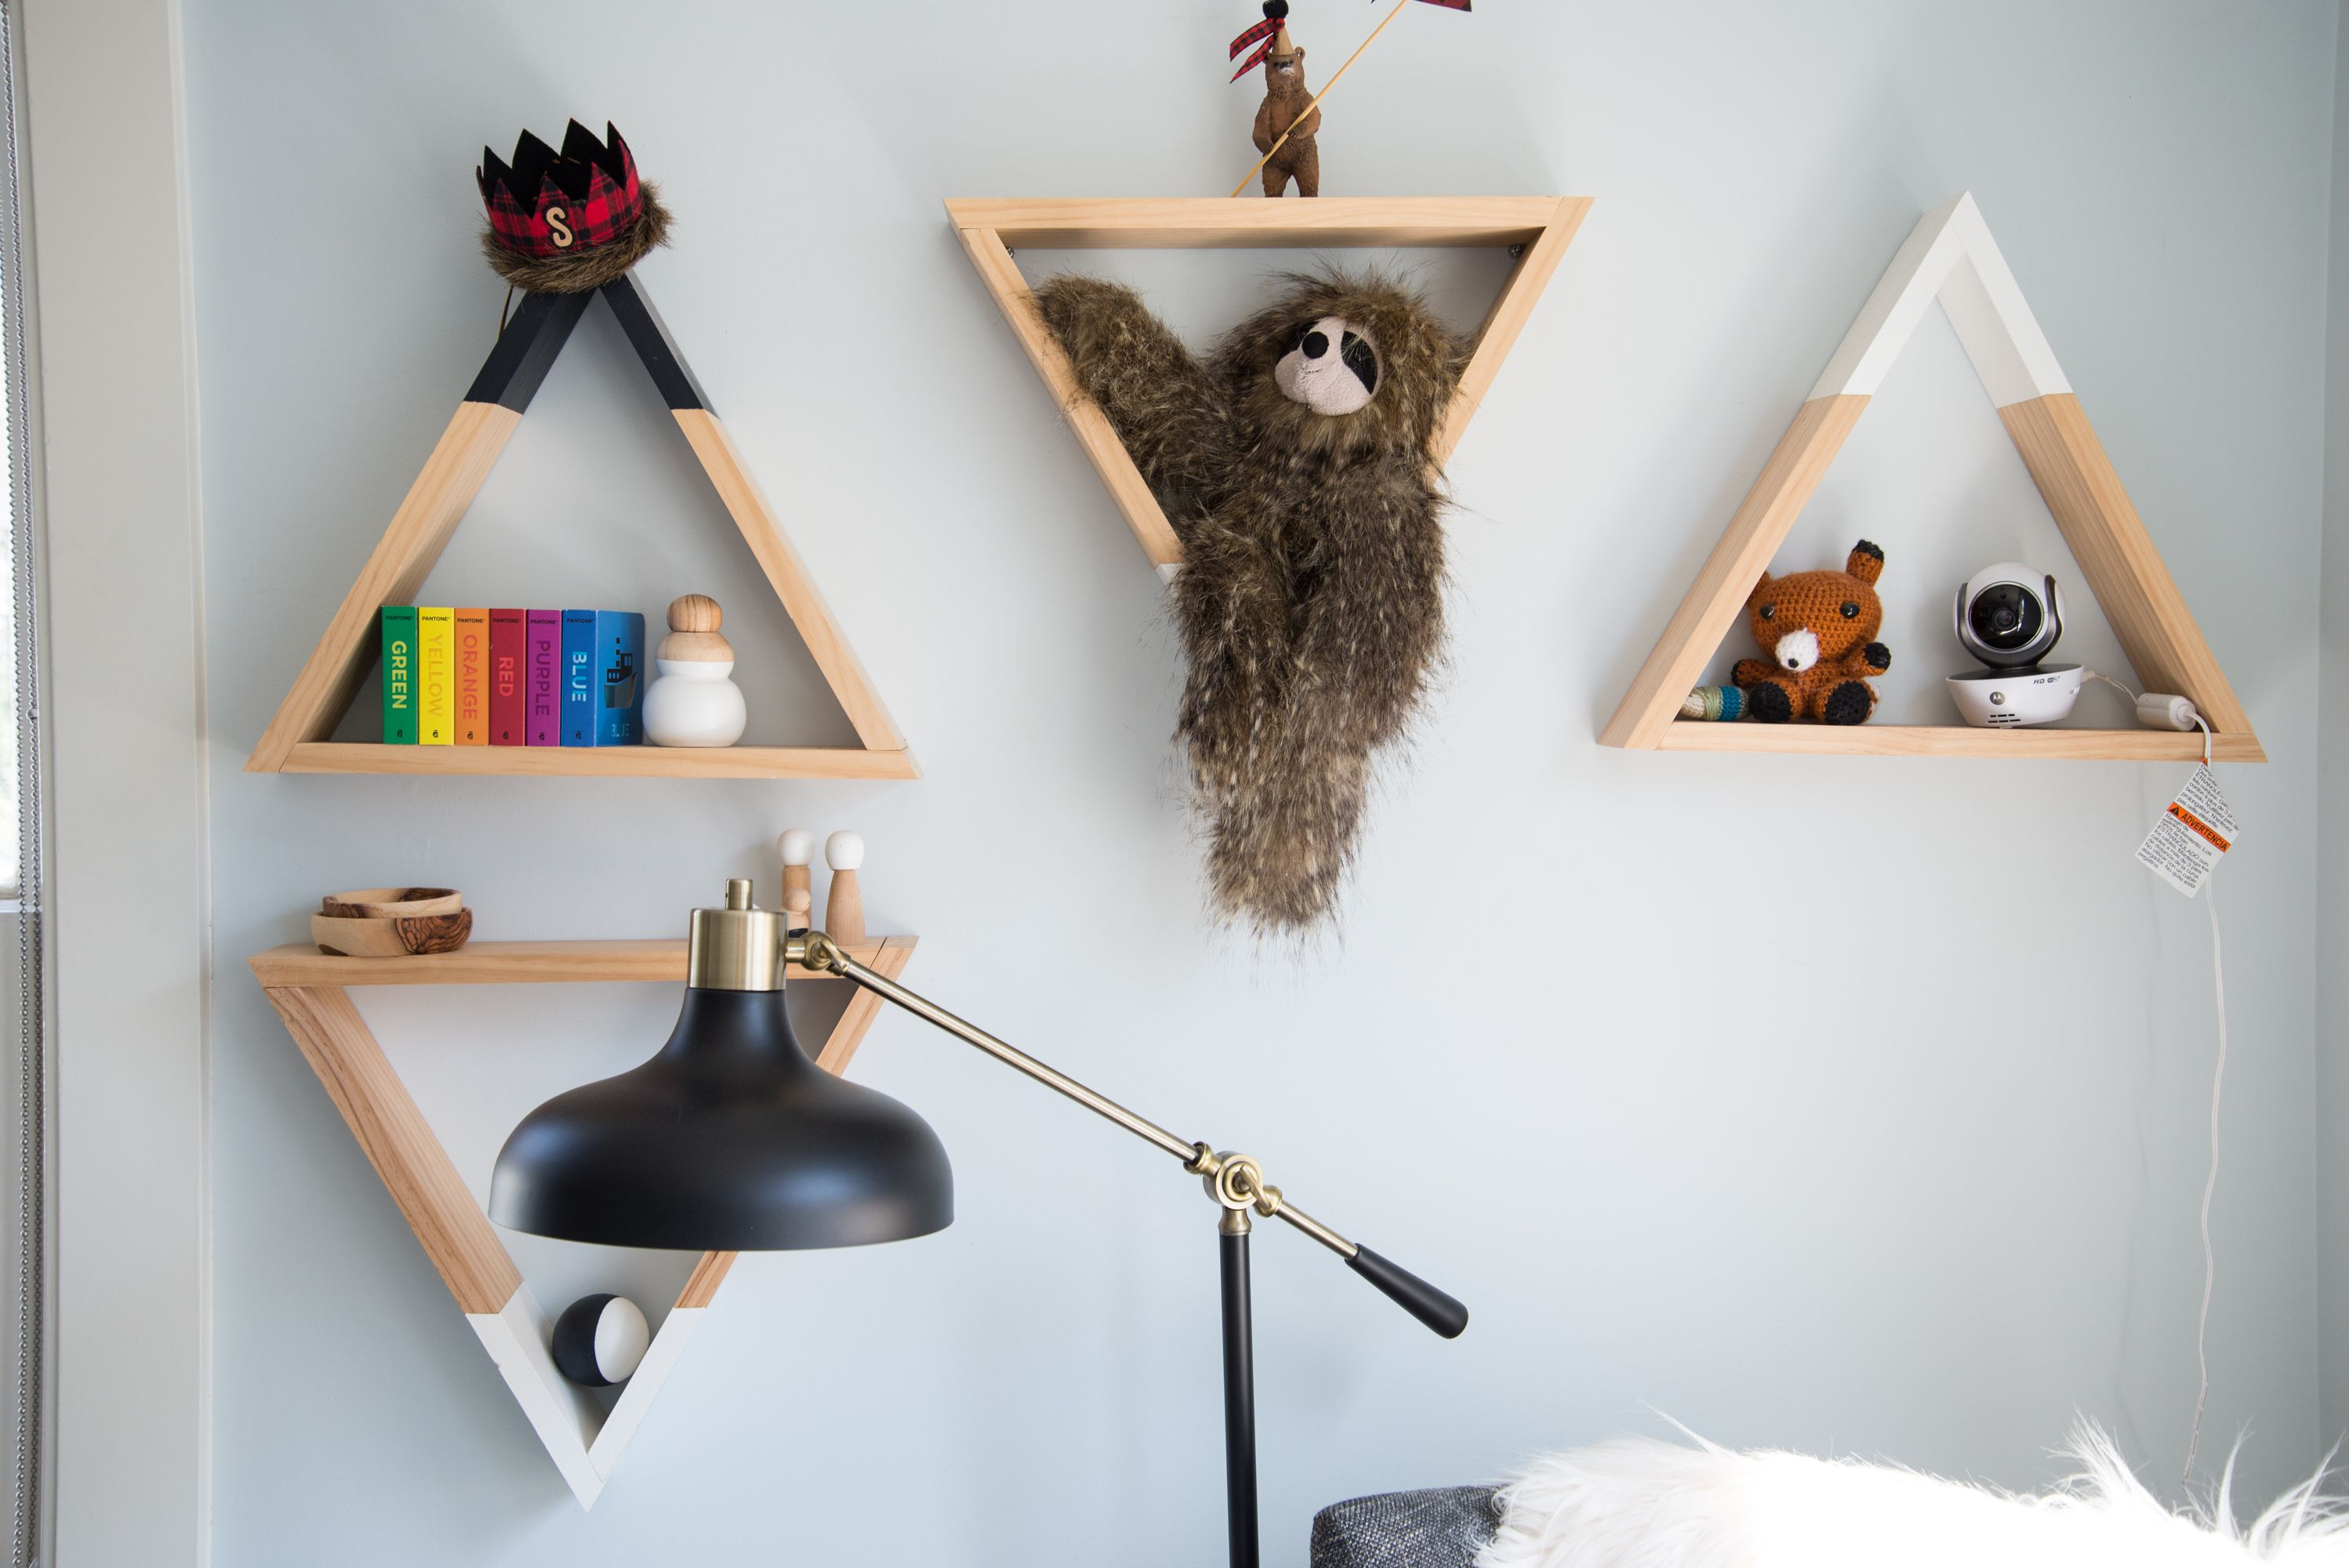 Rookie Renovators Nail it on the First Try | Triangle shelf, House ...